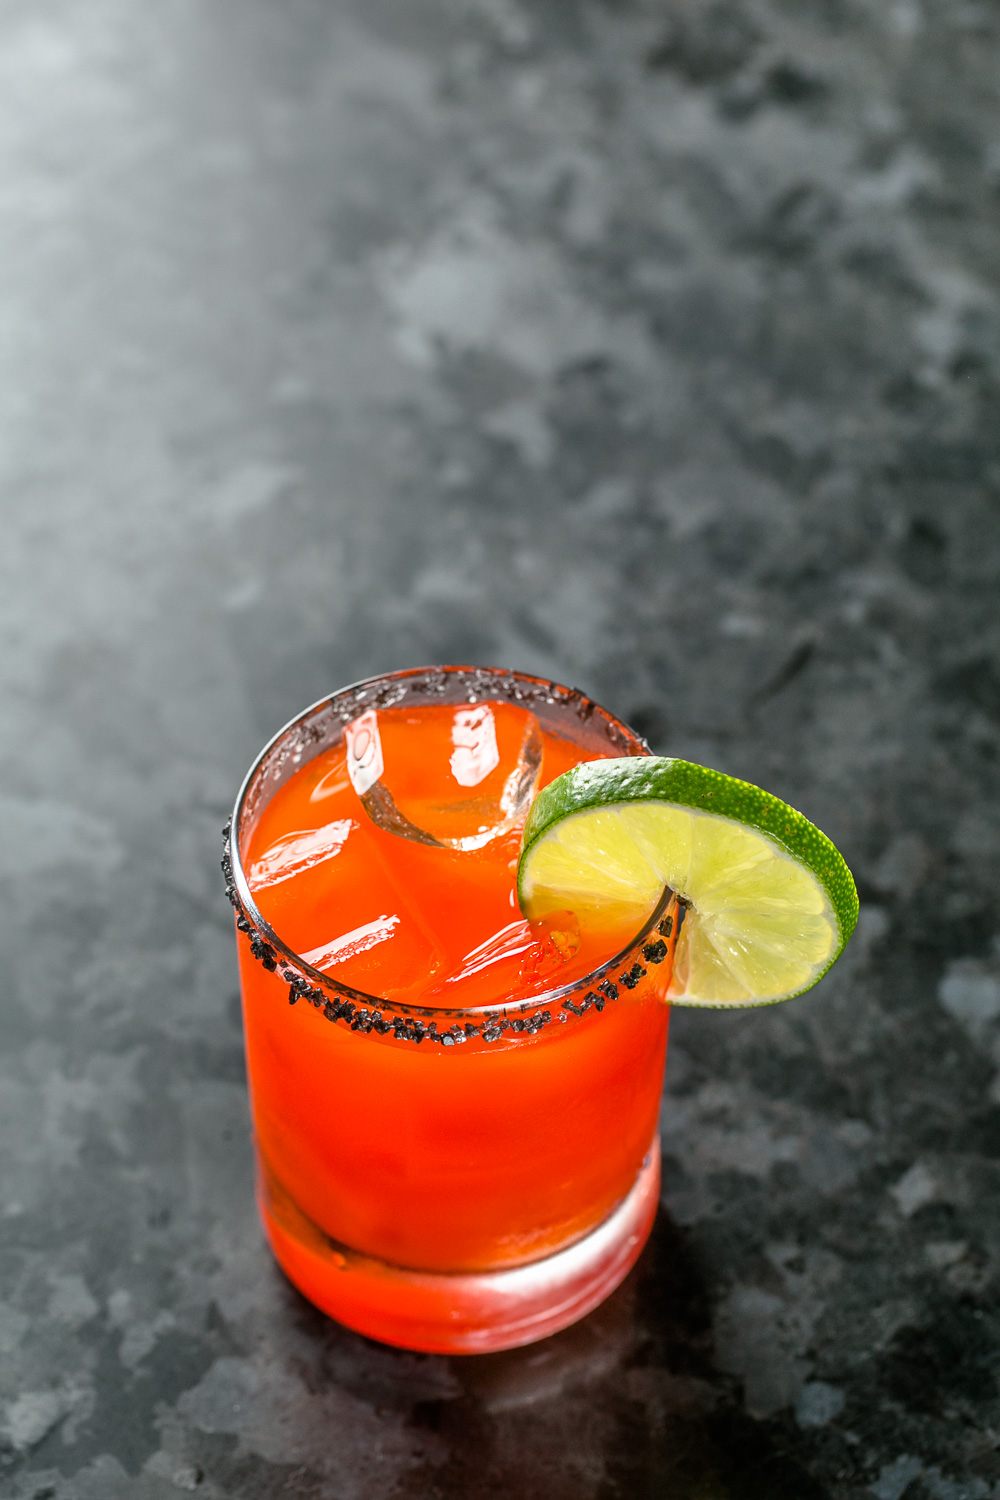 Omni-Hotel-at-The-Battery-Atlanta-Suntrust-Park-Red-Margarita-Erik-Meadows